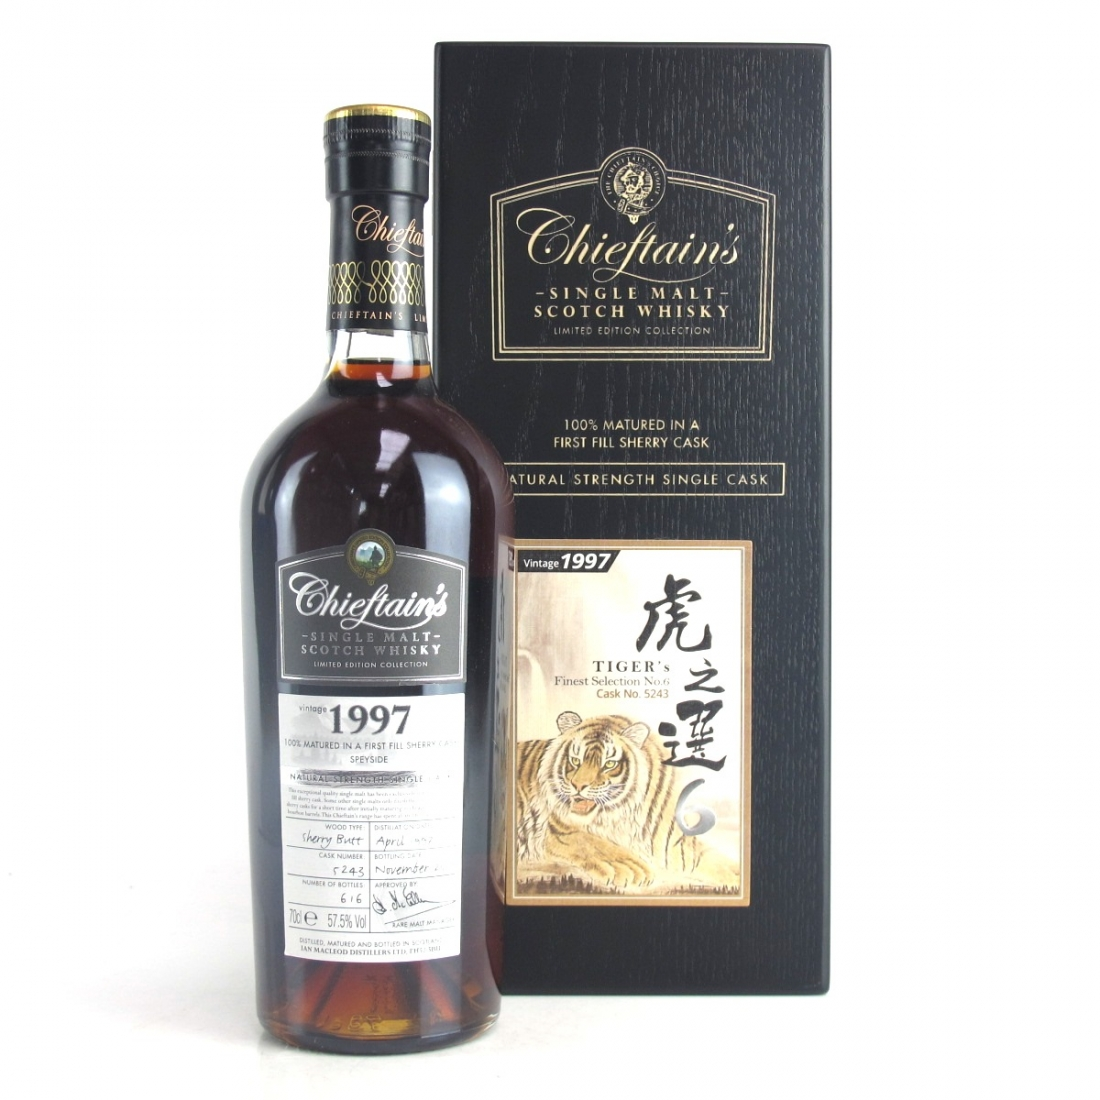 Mortlach 1997 Chieftain's / Tiger's Finest Selection No. 6